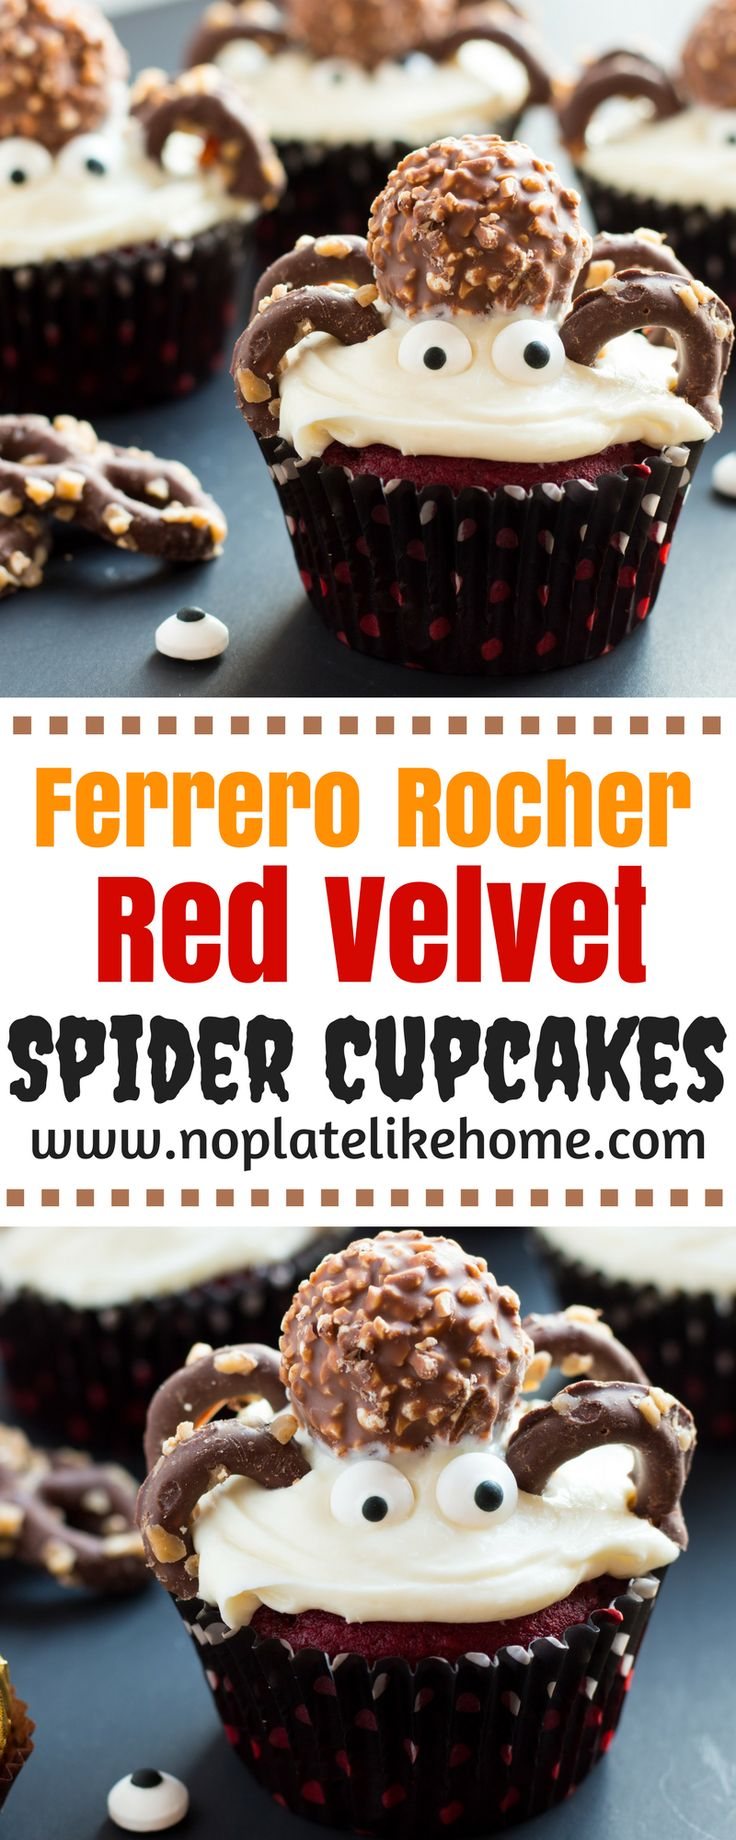 Cute, easy Ferrero Rocher Red Velvet Cupcakes are decorated with toffee chocolate covered pretzel legs, candy eyes and Ferrero Rocher hazelnut chocolates. These upscale cupcakes can be made with a tasty from scratch red velvet and buttercream frosting recipe or a boxed mix to save time. Your kids will have fun decorating them. Great for Halloween parties! Includes how to make tutorial. Pin for later.